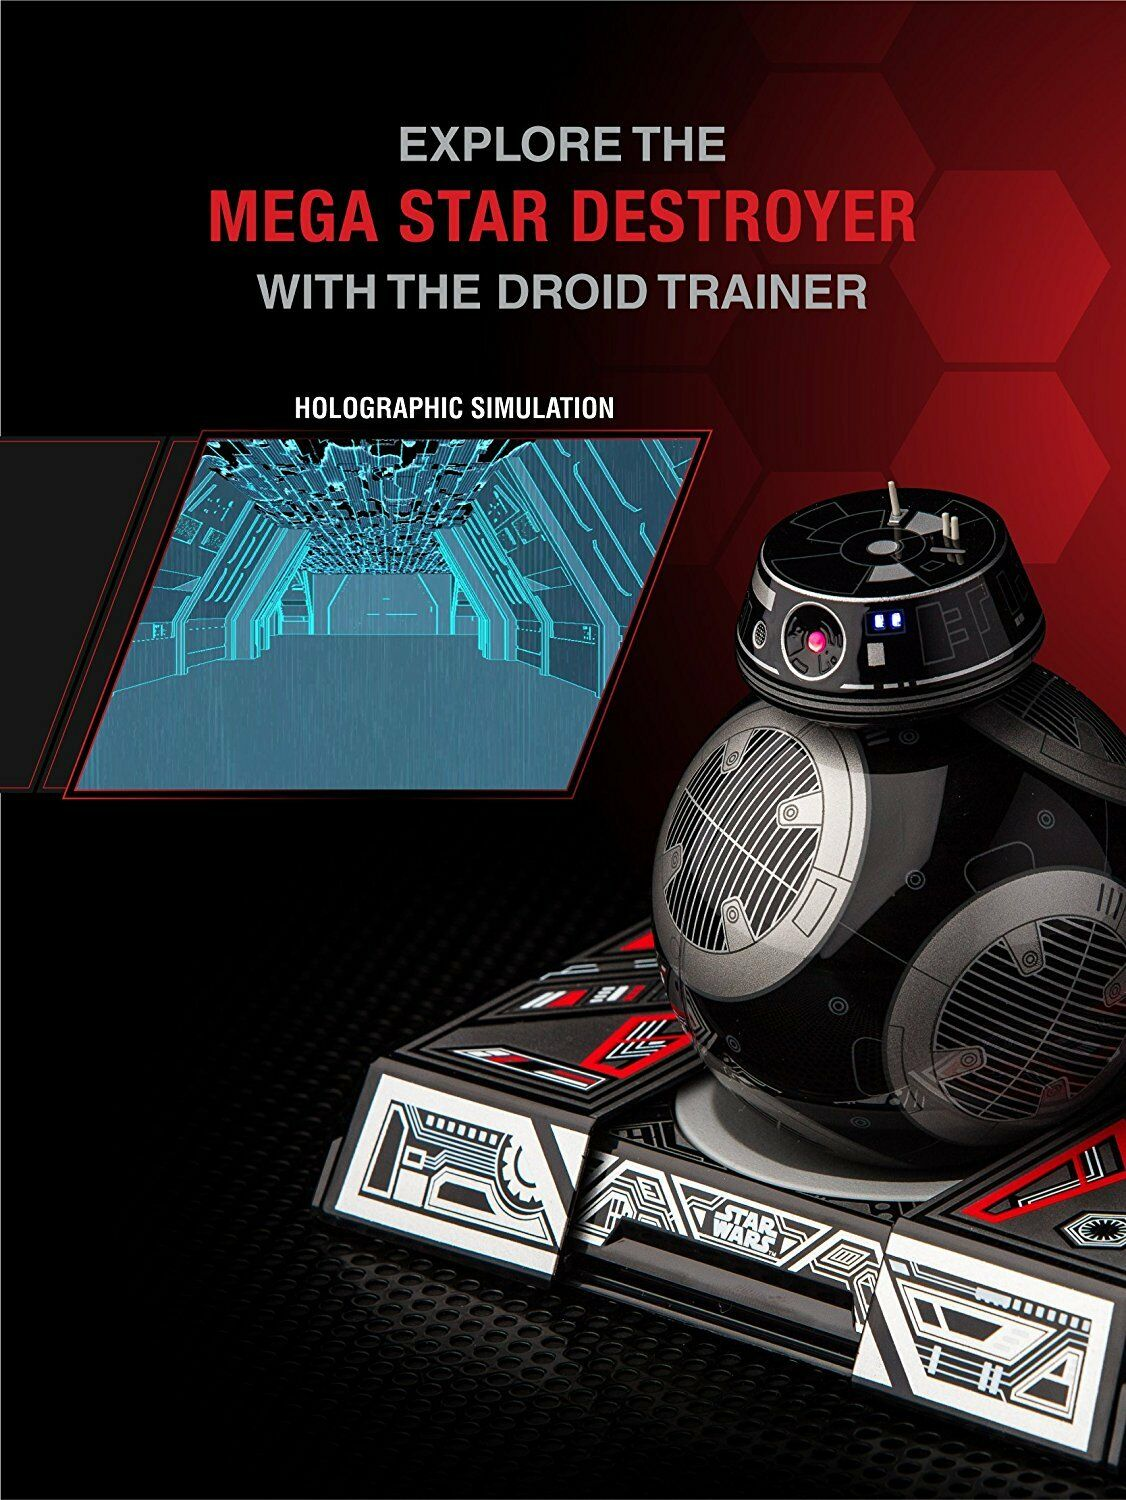 Sphero Star Wars BB-9E App-Enabled Droid with Trainer Droid Brand New and Boxed